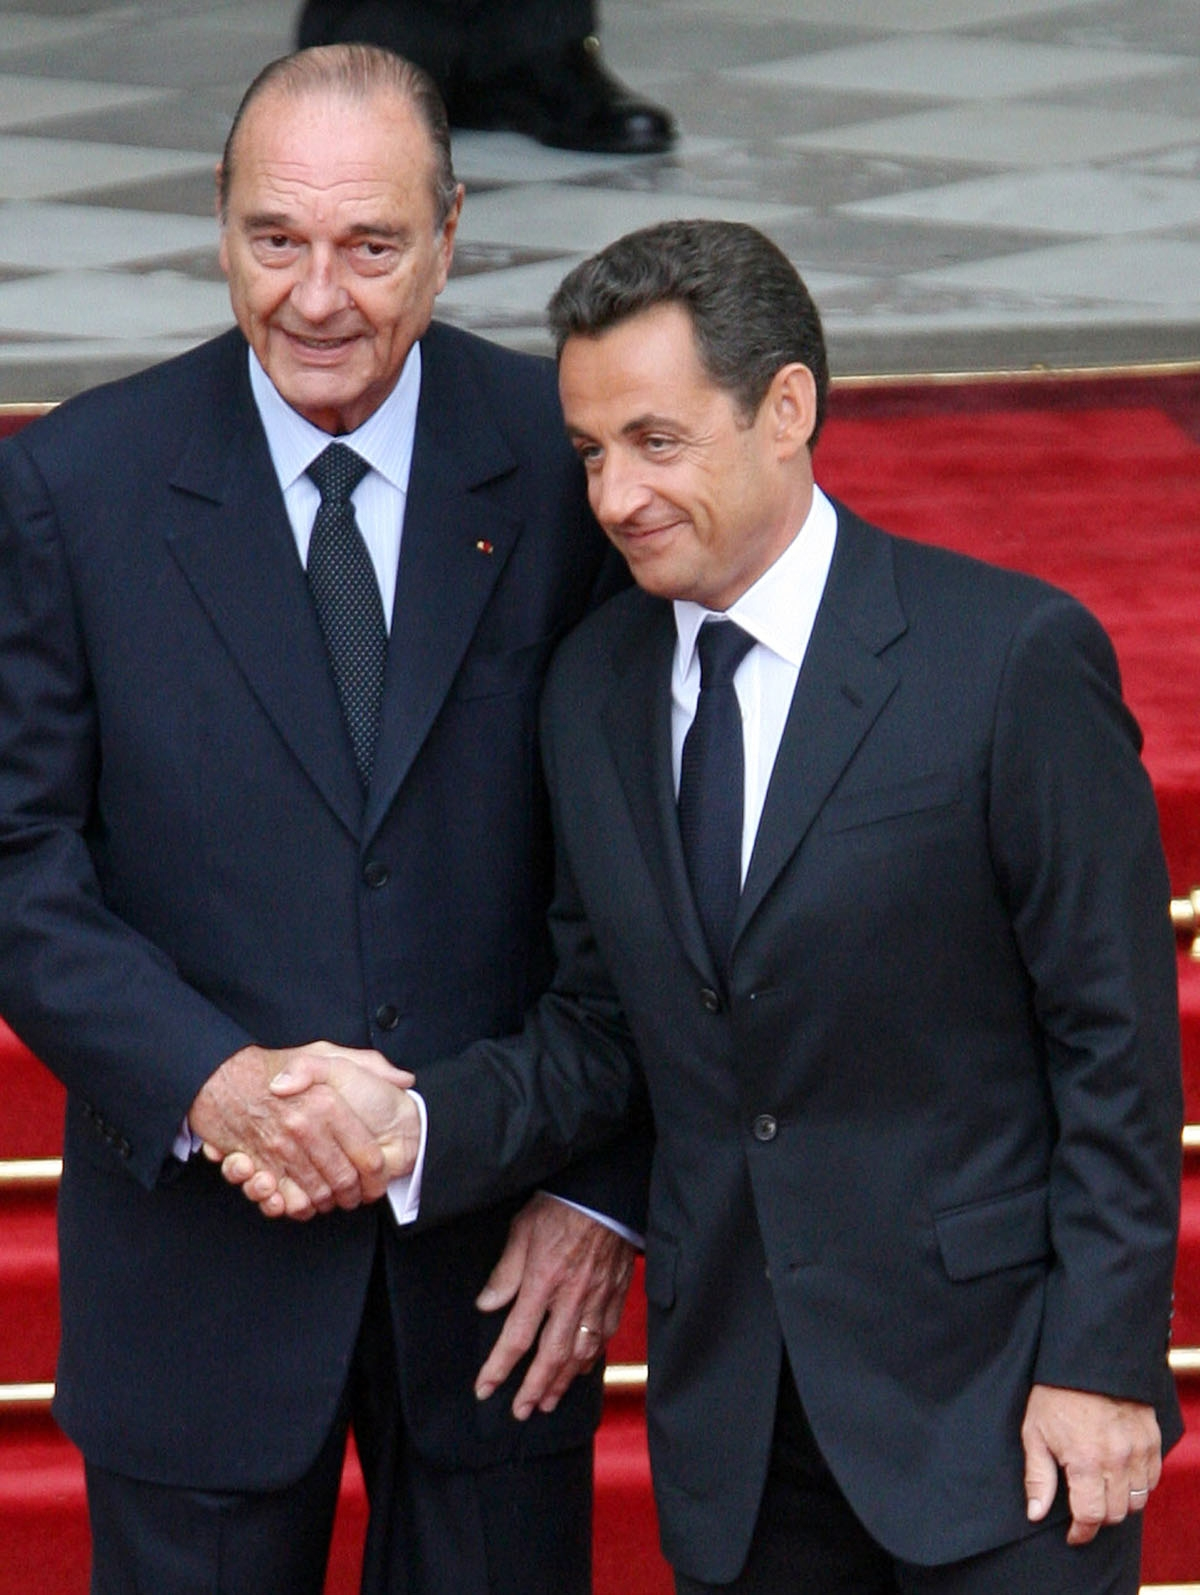 French president Jacques Chirac (L) welcomes his  successor Nicolas Sarkozy upon his arrival at the Elysee Palace for the formal handover of power ceremony, 16 May 2007 in Paris